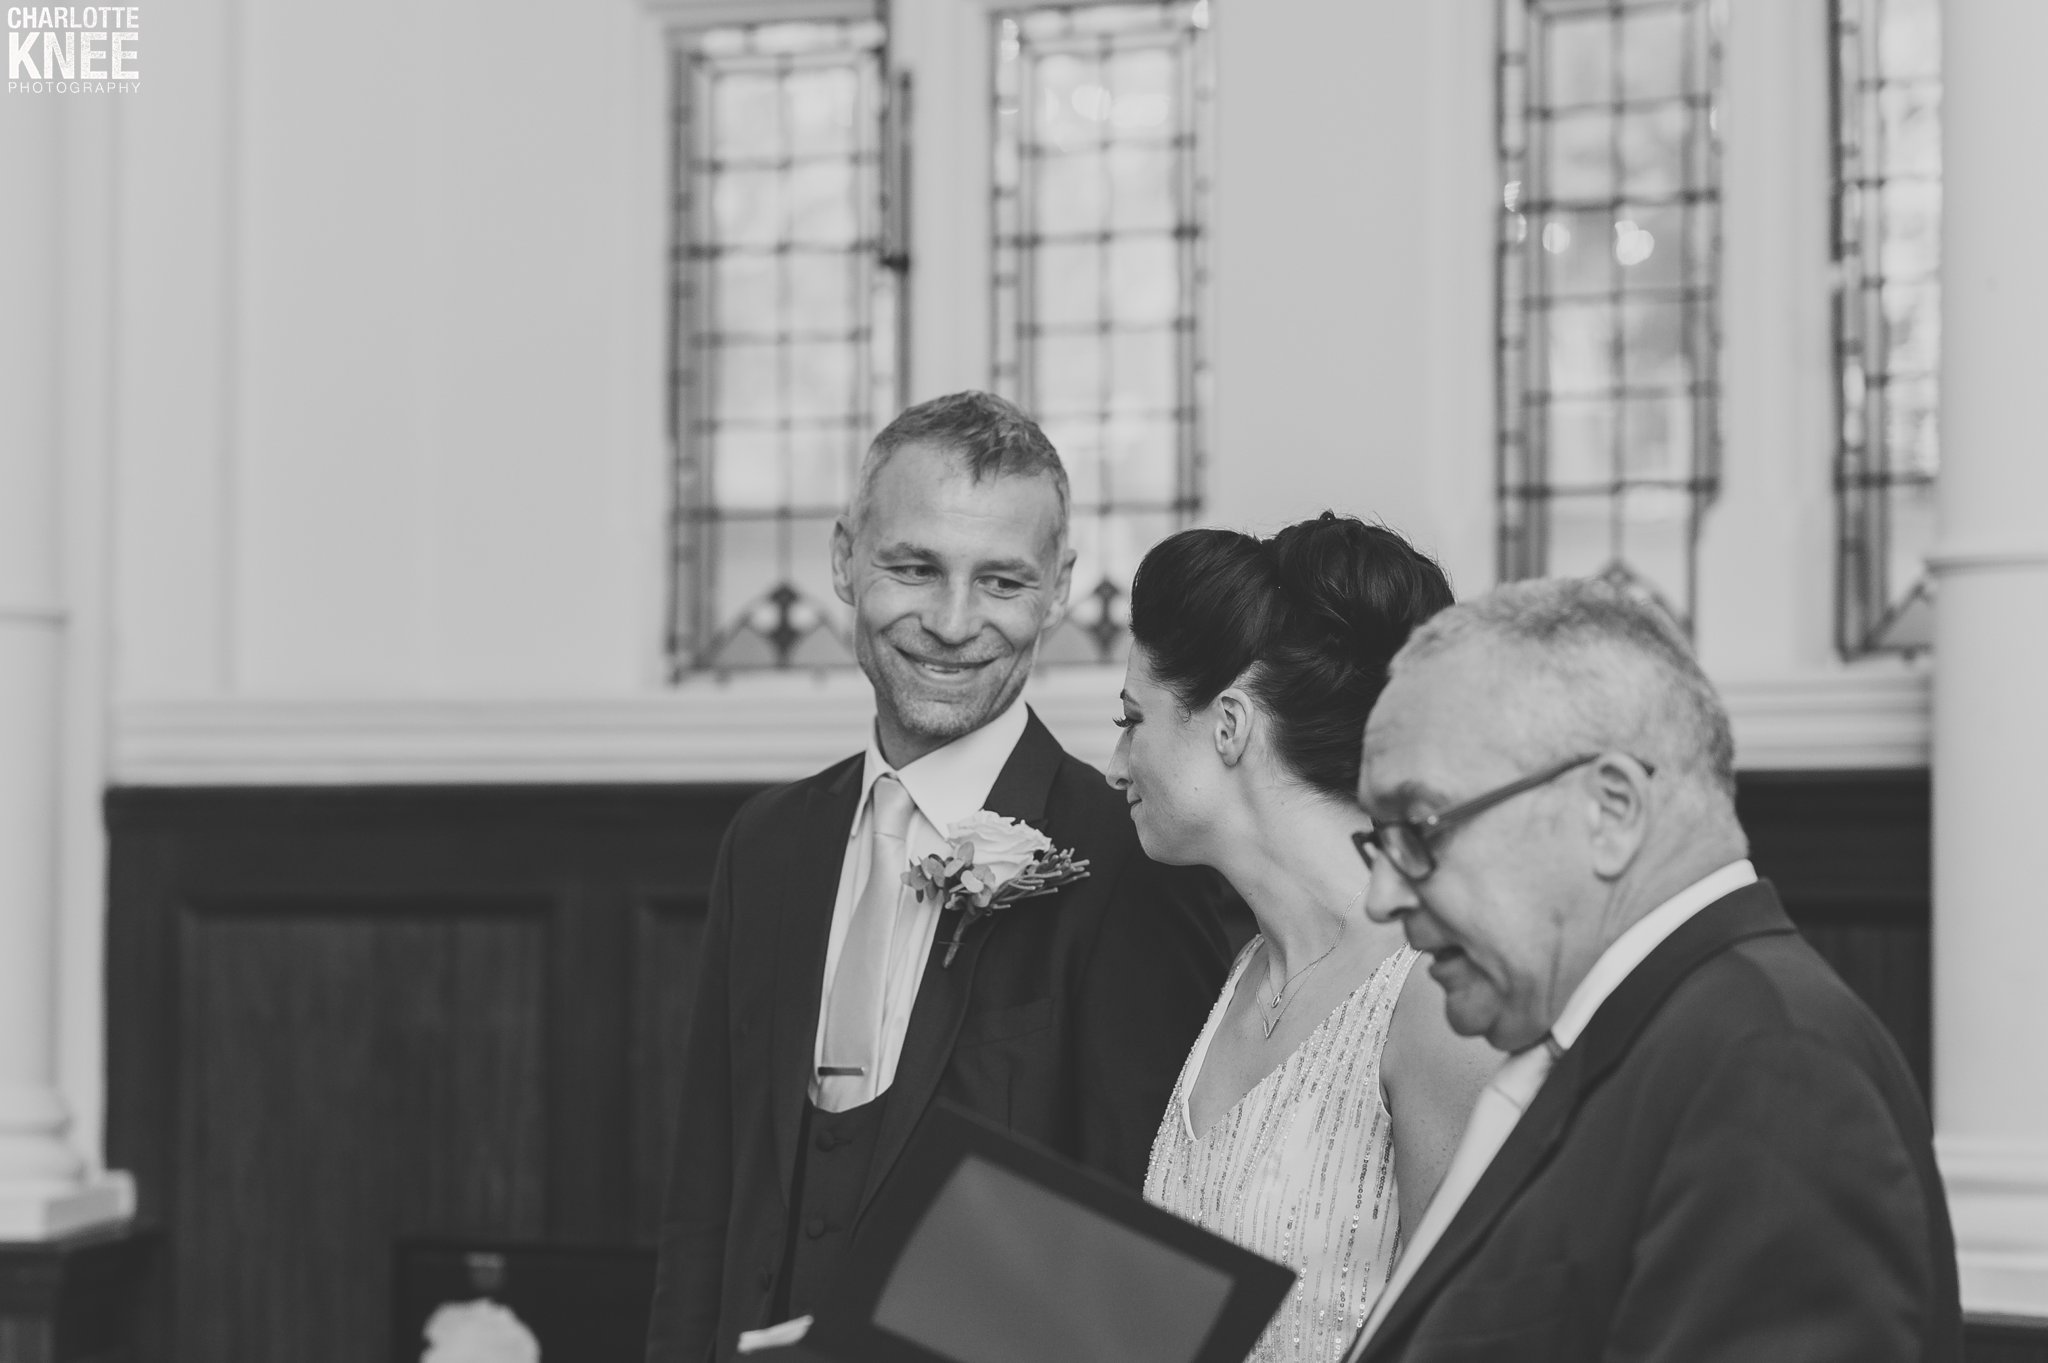 London Wedding Finsbury Town Hall Copyright Charlotte Knee Photography_0069.jpg